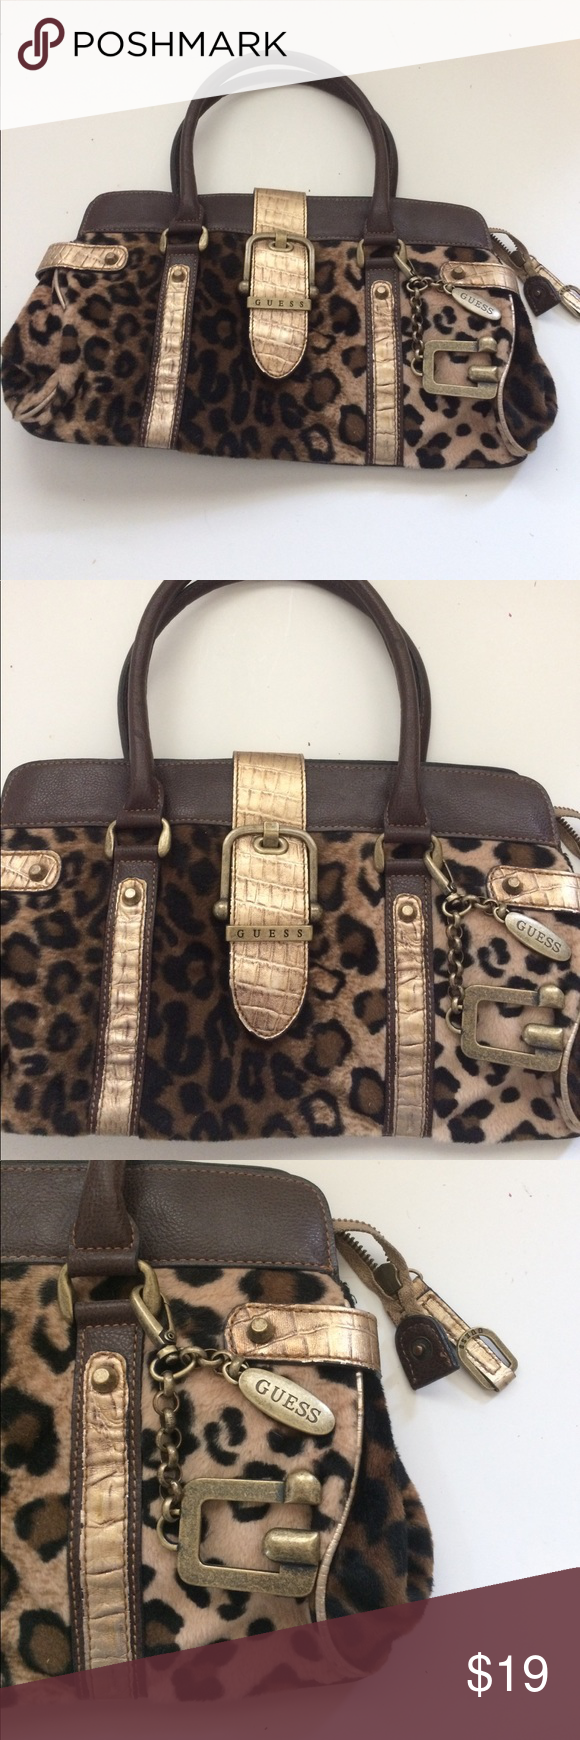 "Guess Fuzzy Cheetah Brown Gold Bag How fun is this bag?! Fuzzy Cheetah print bag. Metallic gold details. Vegan leather. Exterior and green lining in good used condition. Light wear. 14"" by 9"" All reasonable offers accepted. Guess Bags Satchels"